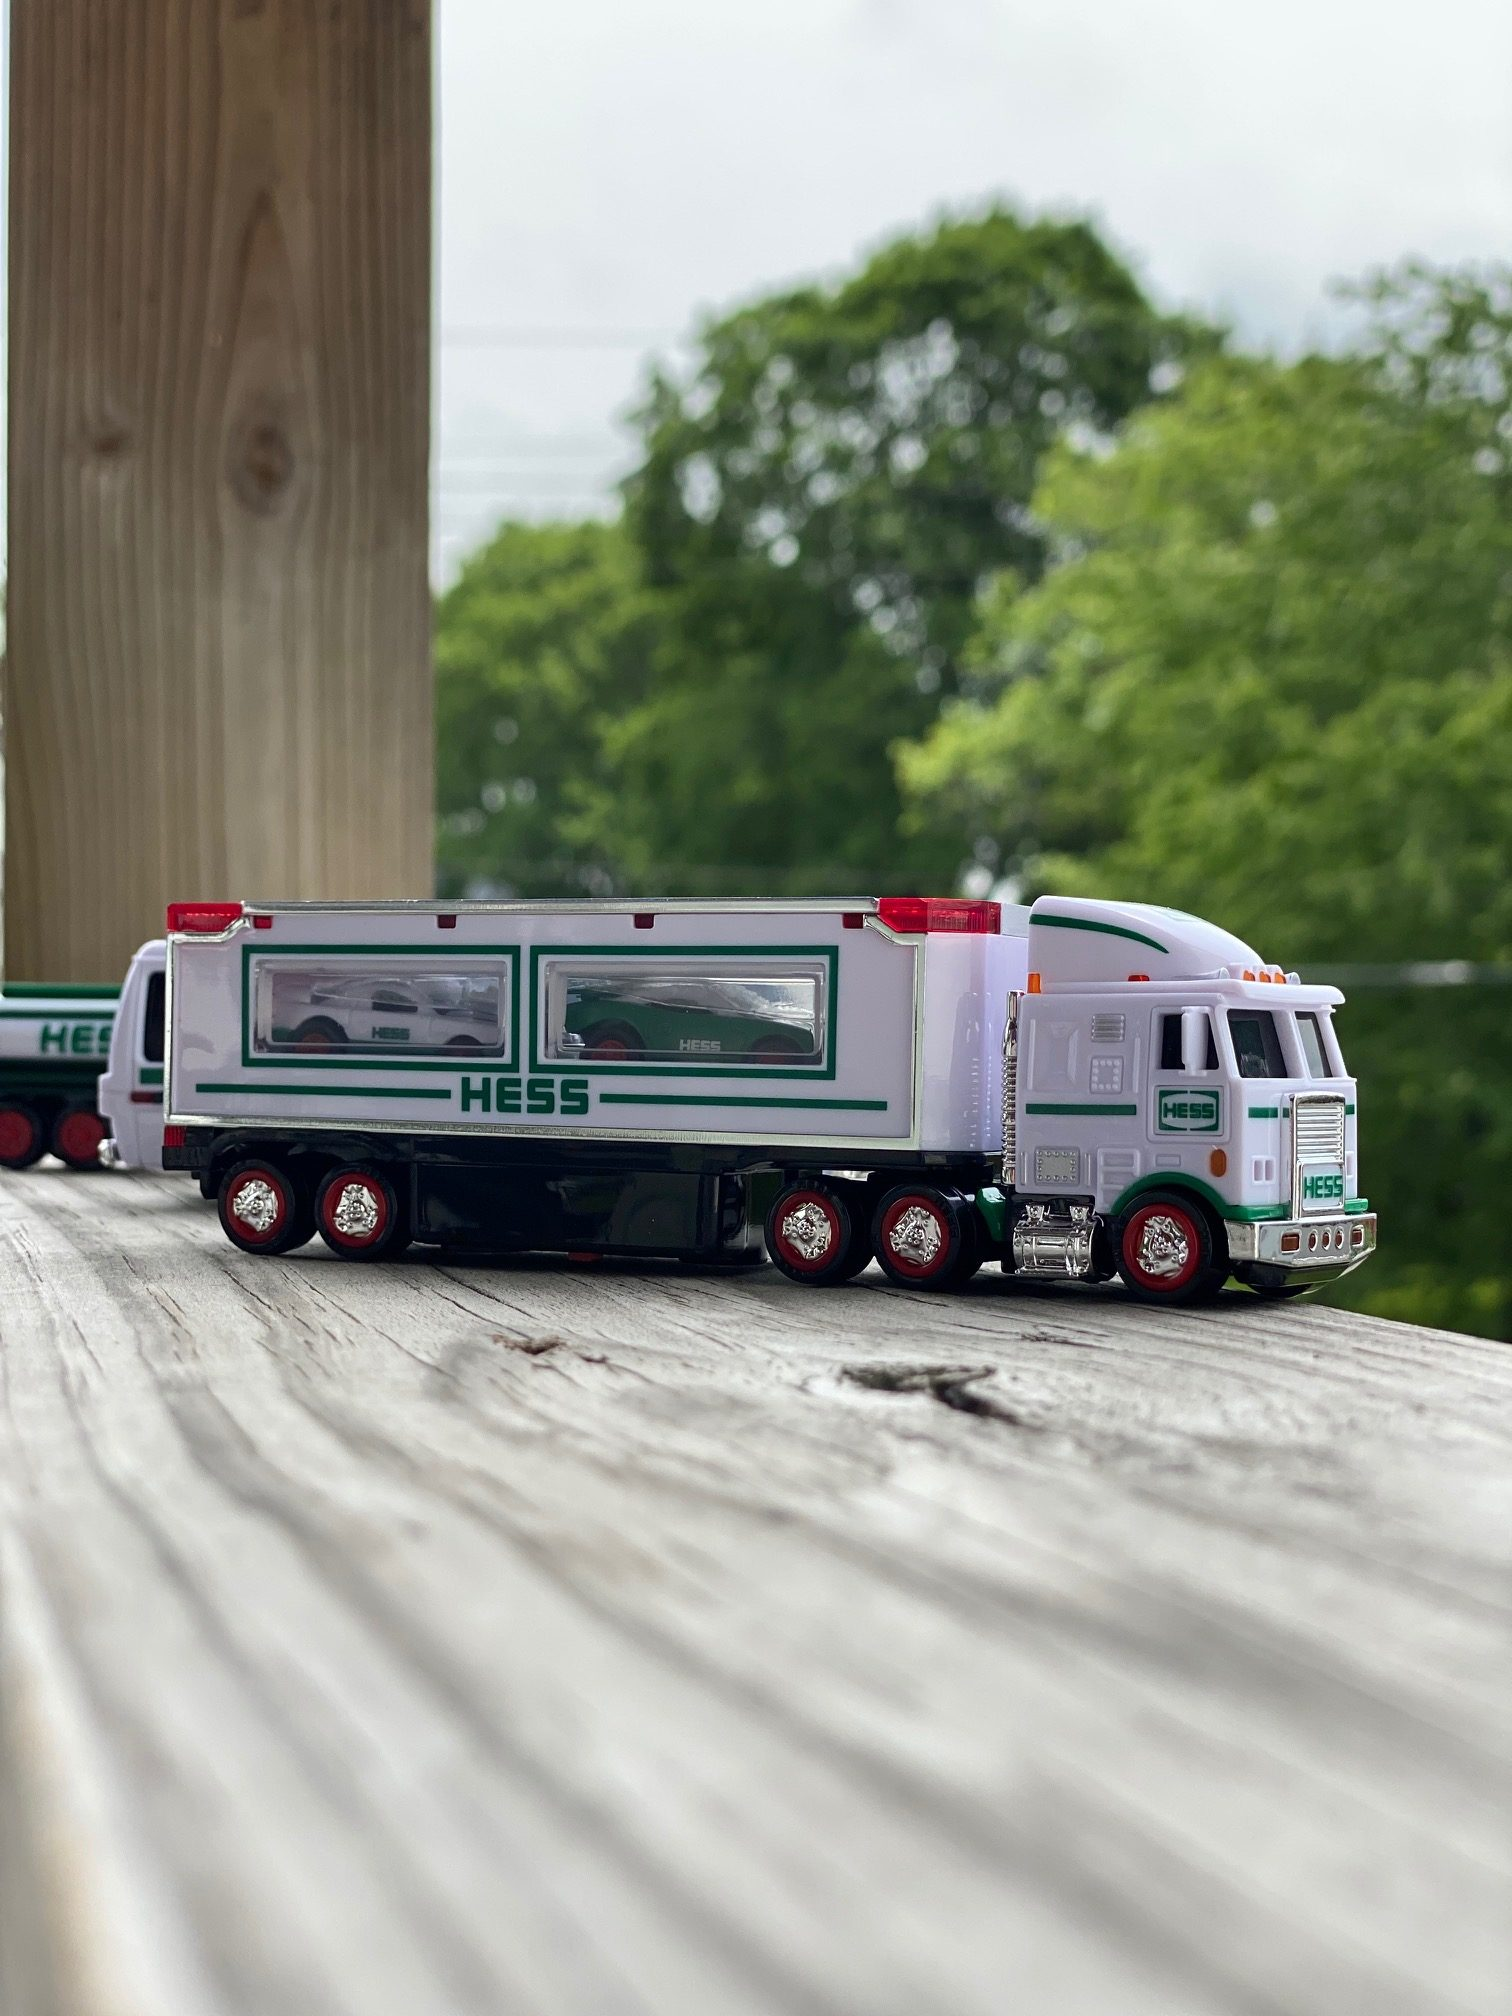 1997 Hess 3 in 1 Toy Truck